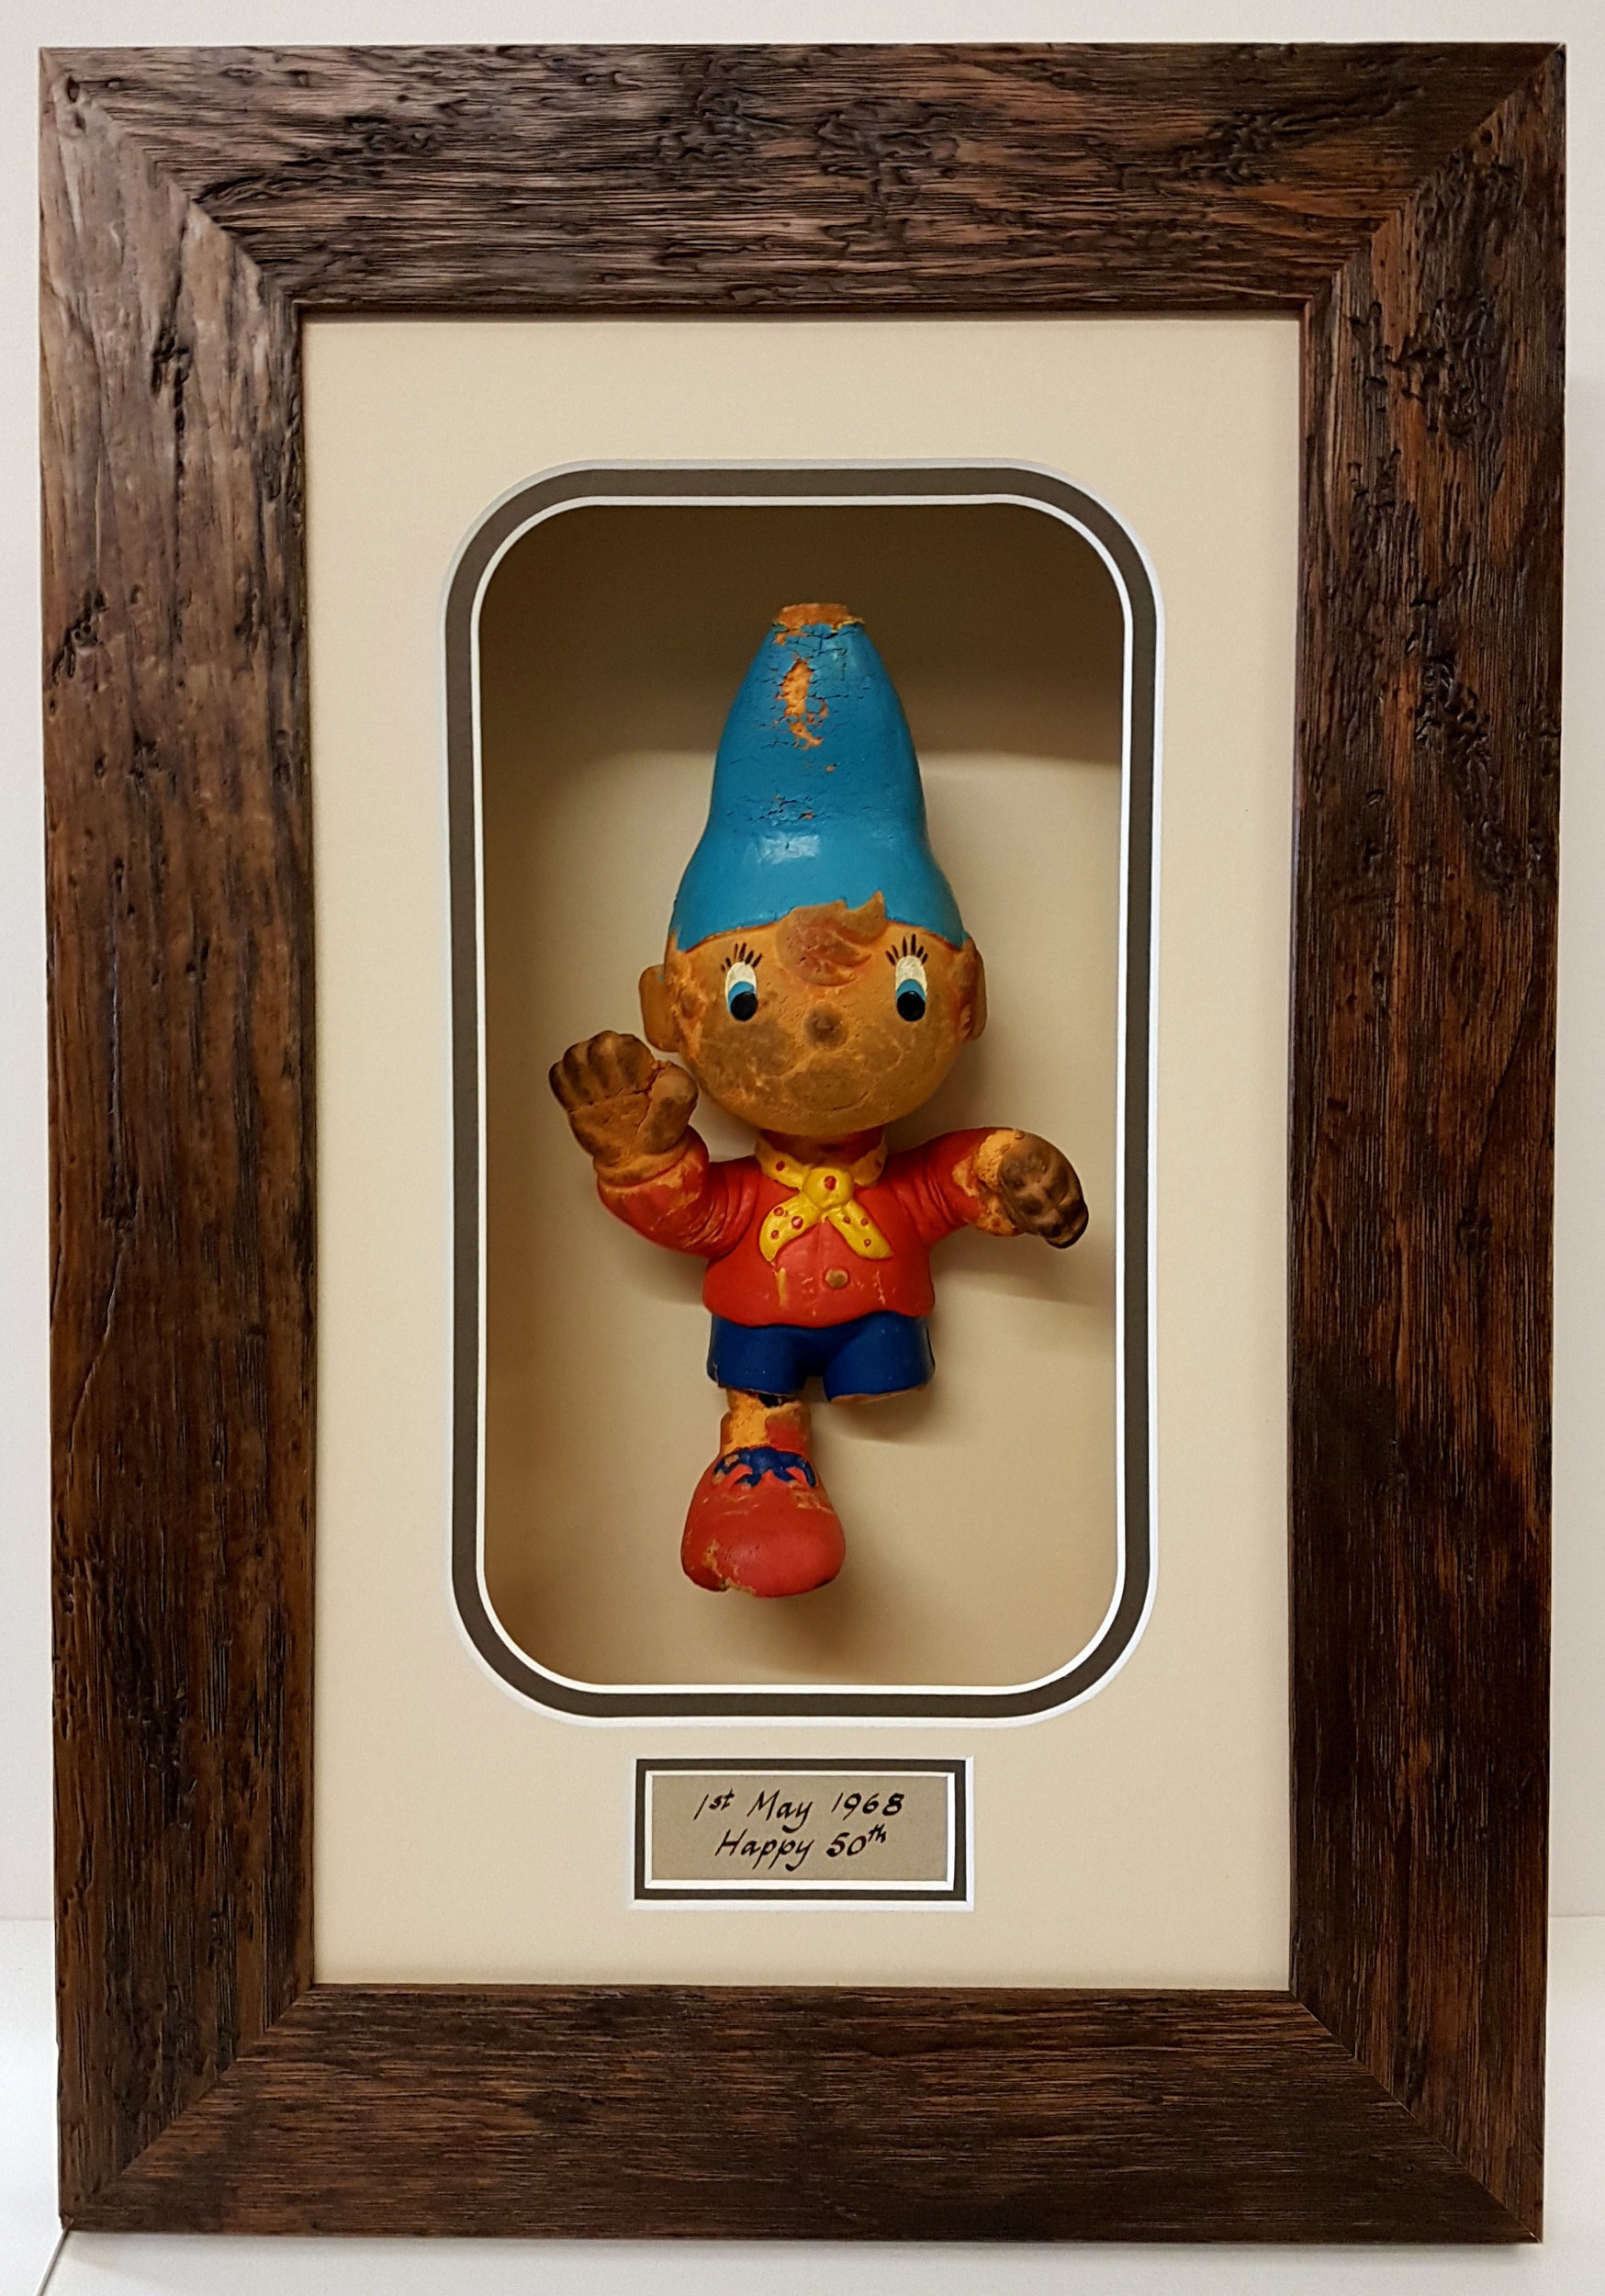 This 1960's Noddy toy was very delicate, even to handle. I had to fix a leg back on then suspend the toy in place without showing any sign of how it was done. A box frame was needed and I hand wrote the sub-text for a touch of vintage authenticity. Invisible glass is perfect for this type of framing.